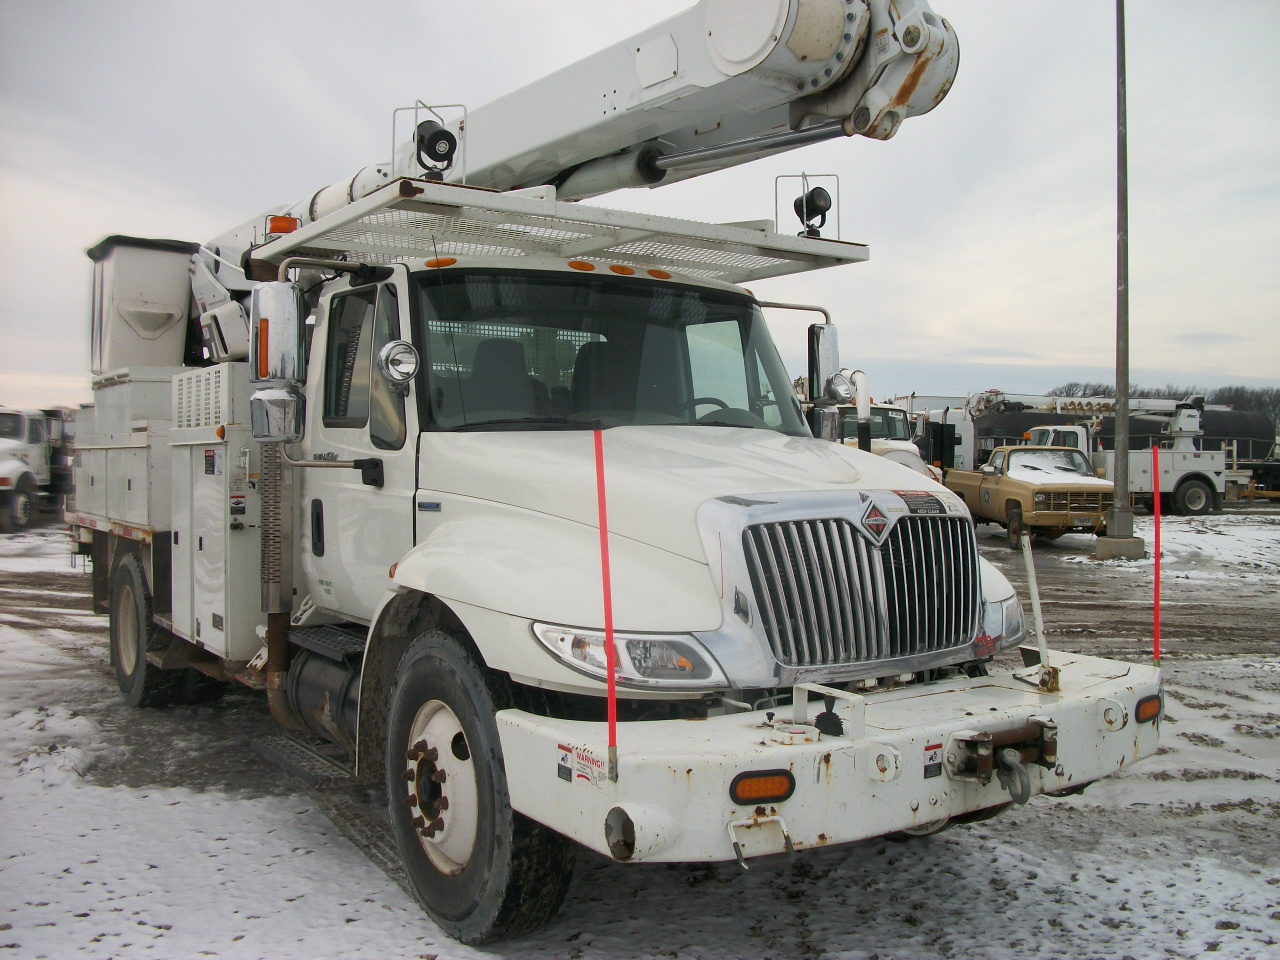 55' Altec AM650 Bucket Truck w/ Material Handler on a 2008 International  4300 Chassis  Maxforce 466DT Diesel, Automatic Transmission, 33,000 GVW,